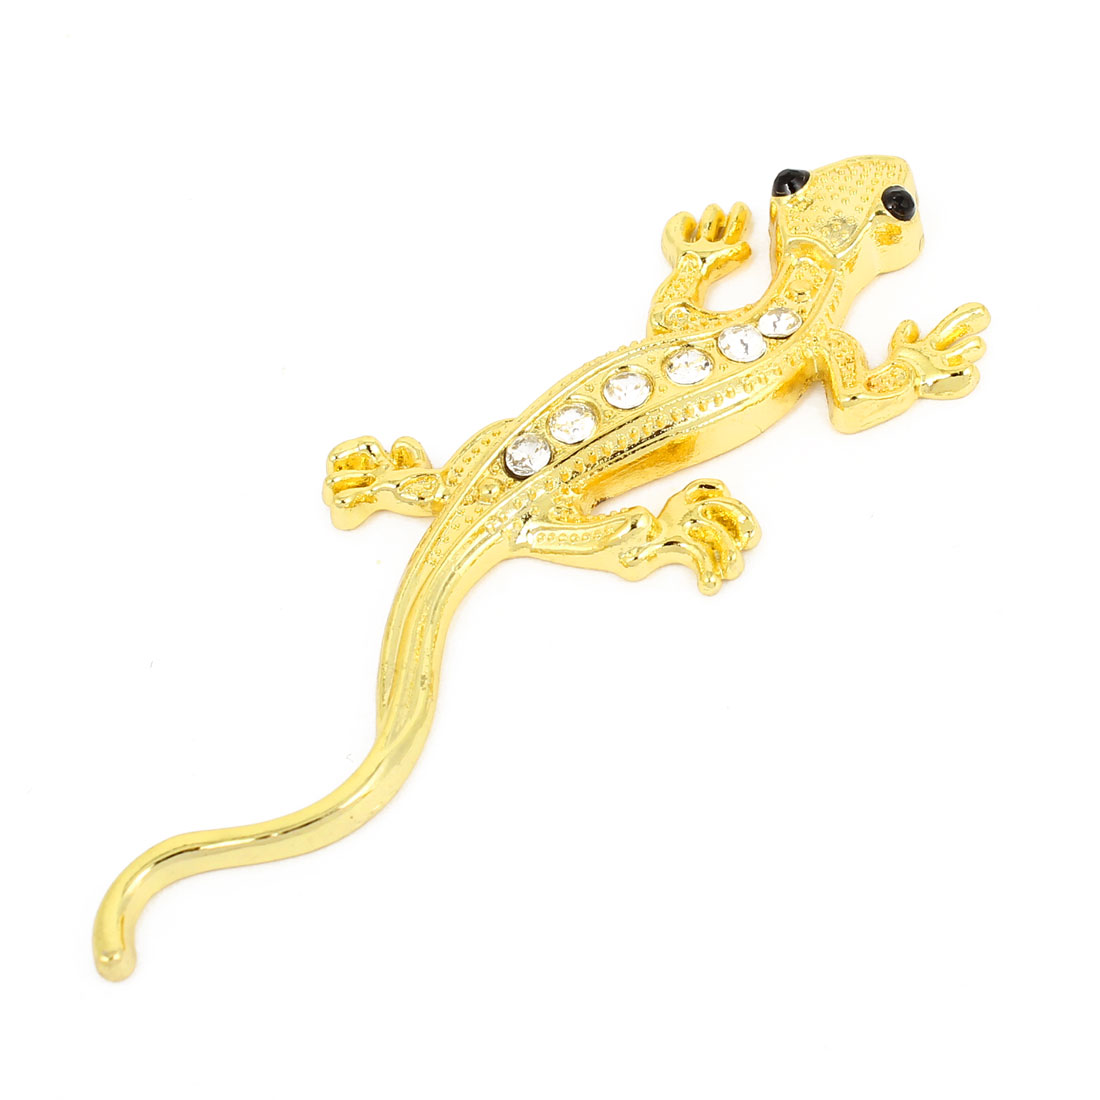 Car Gold Tone Wall Gecko Design Rhinestone Decor Adhesive Emblem Badge Sticker